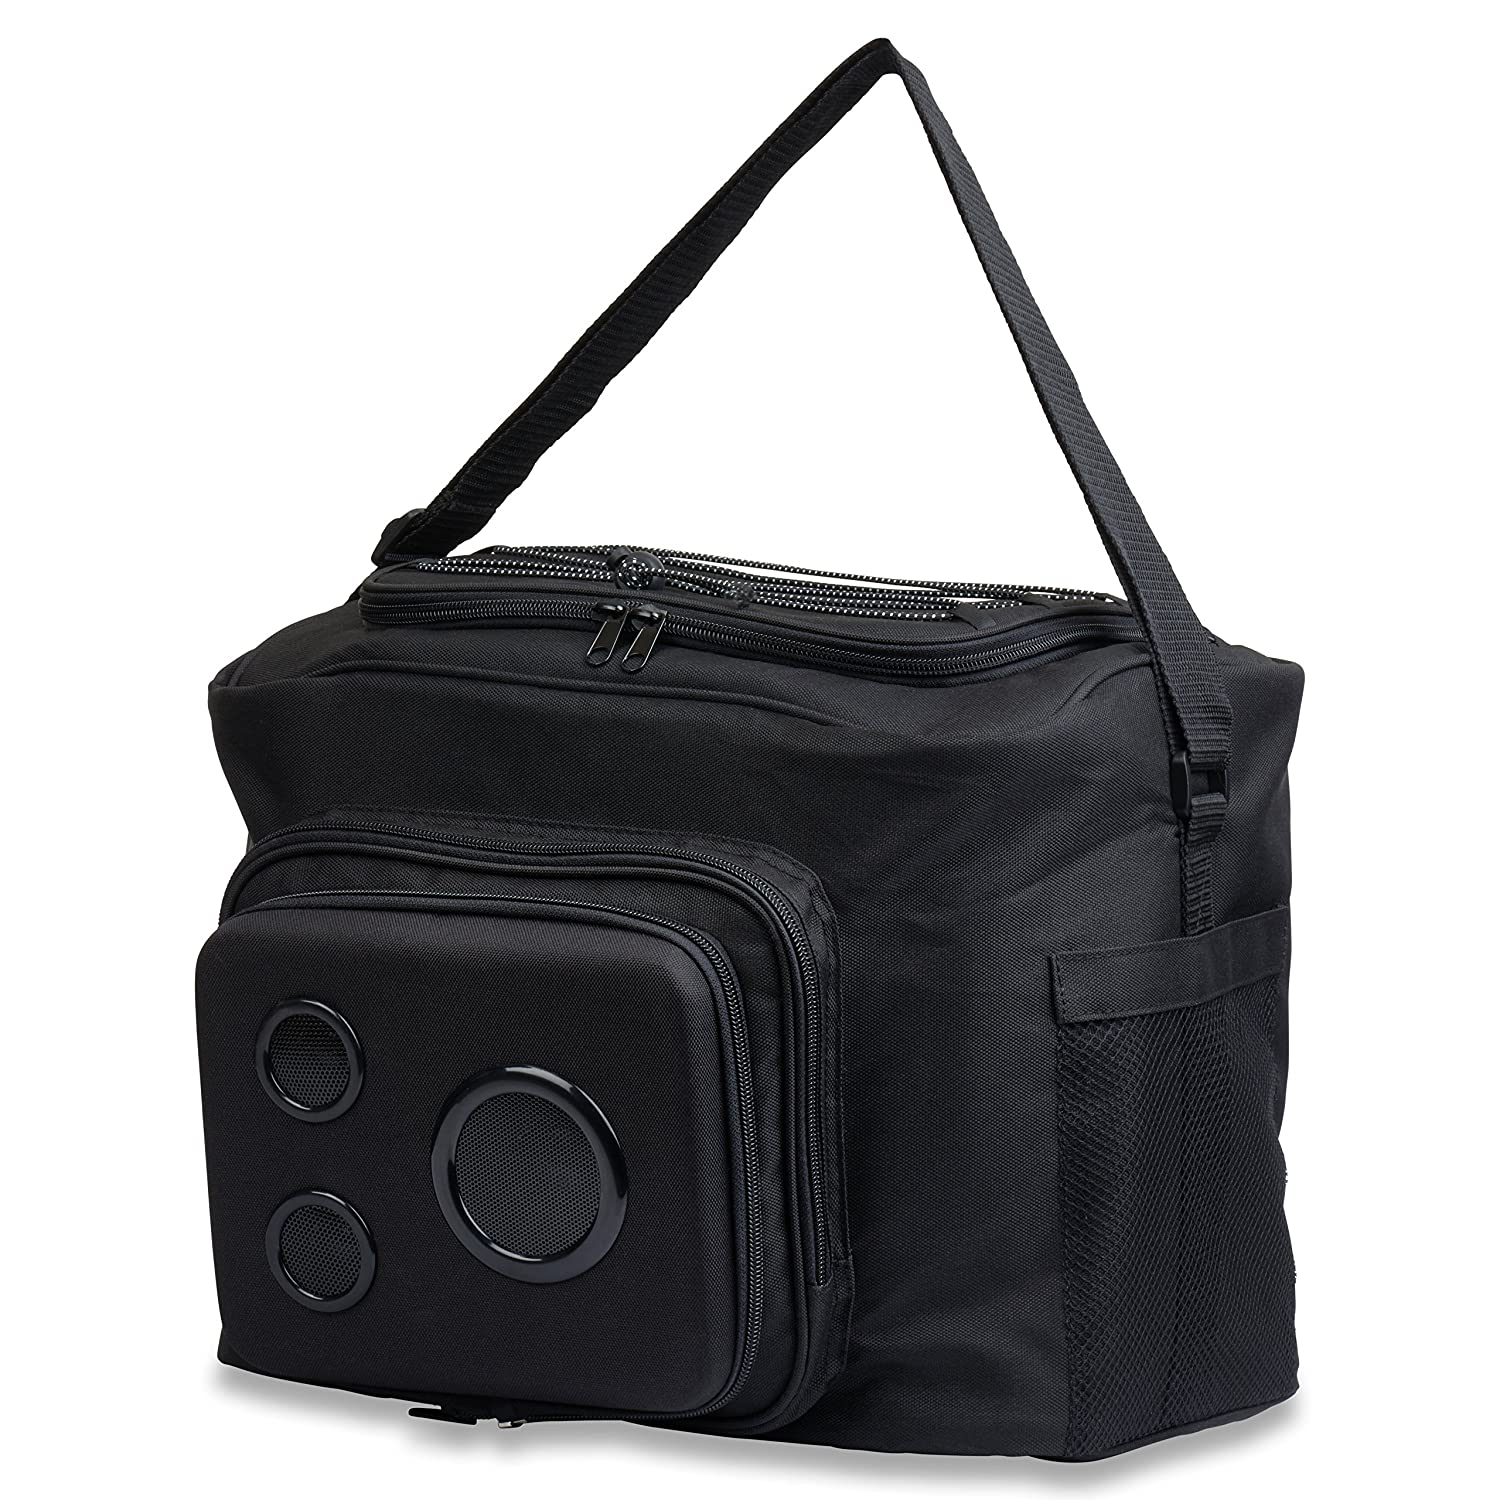 School bag riddim zip - Amazon Com The Rager Cooler The Bluetooth Speaker Cooler The Premium Cooler With Speakers Of 2017 Black Electronics